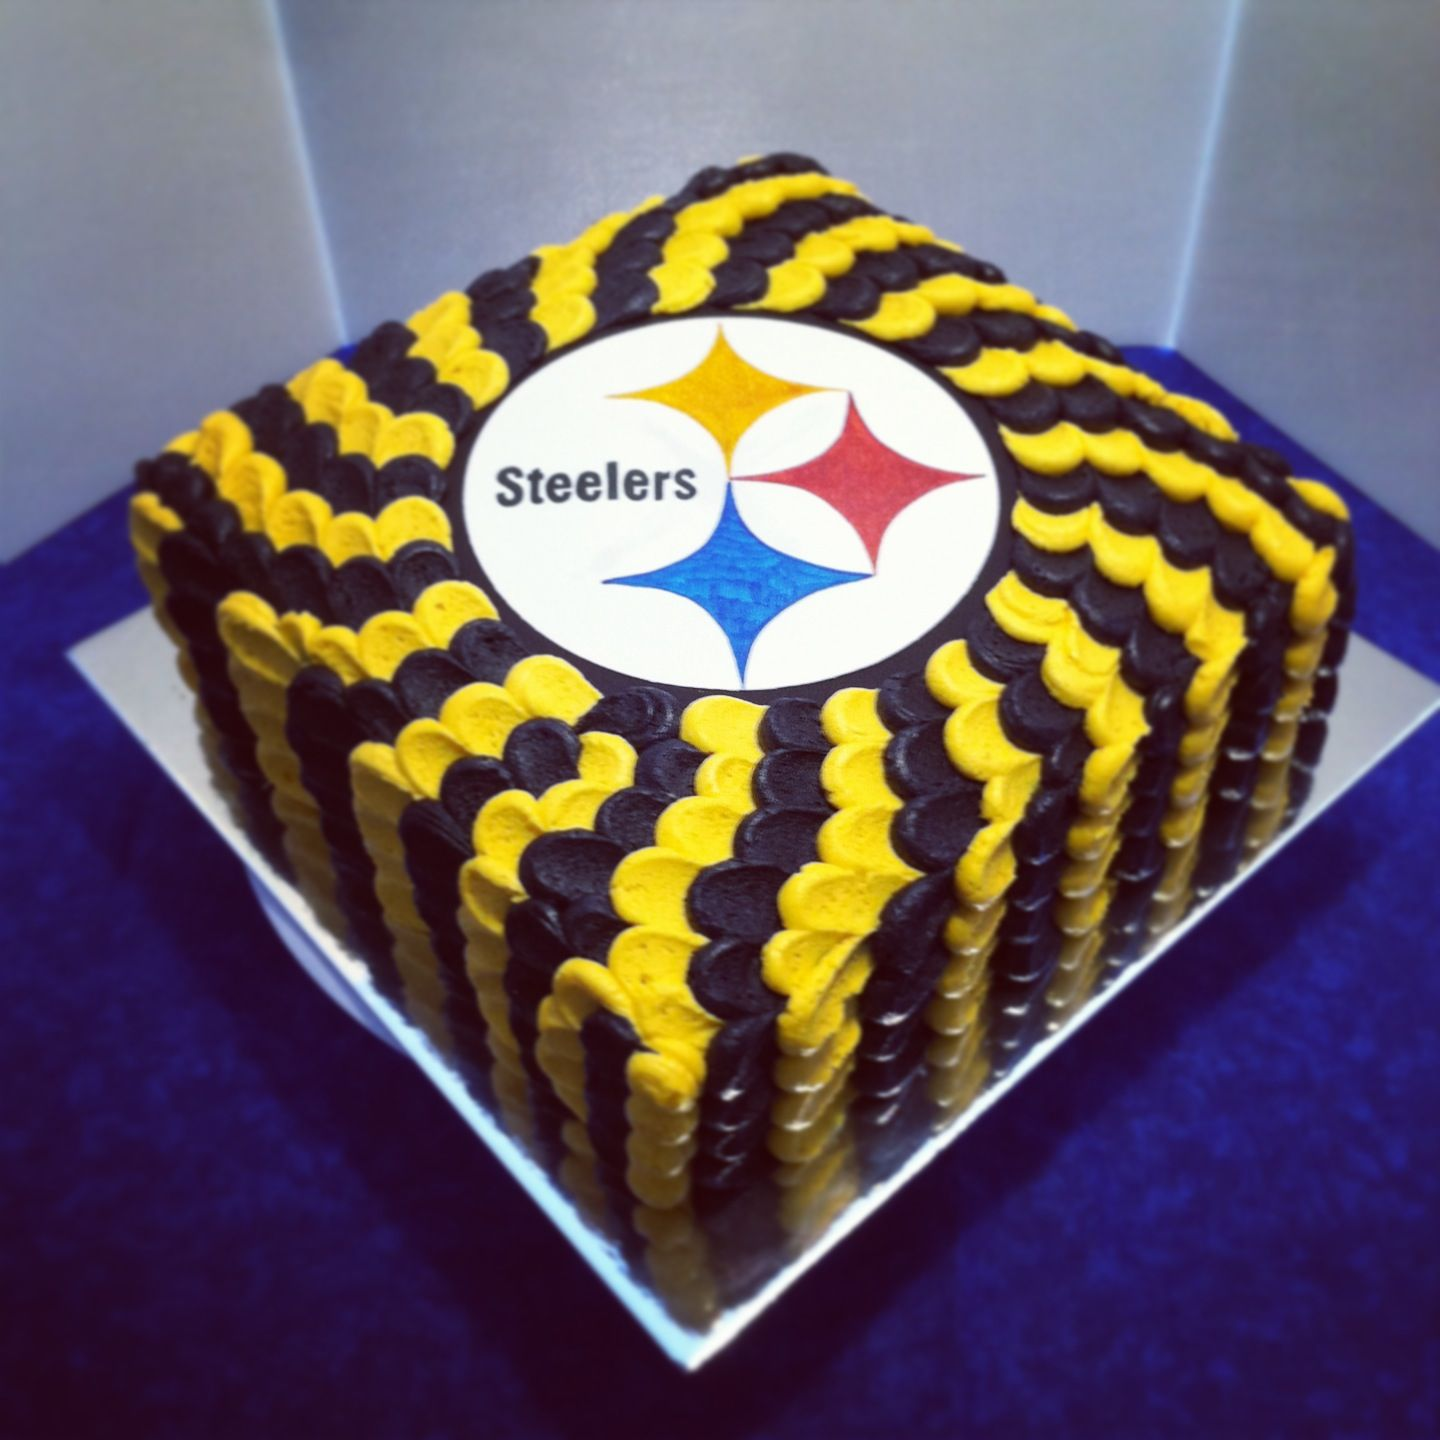 Steelers cake for my little brothers birthday Sweets